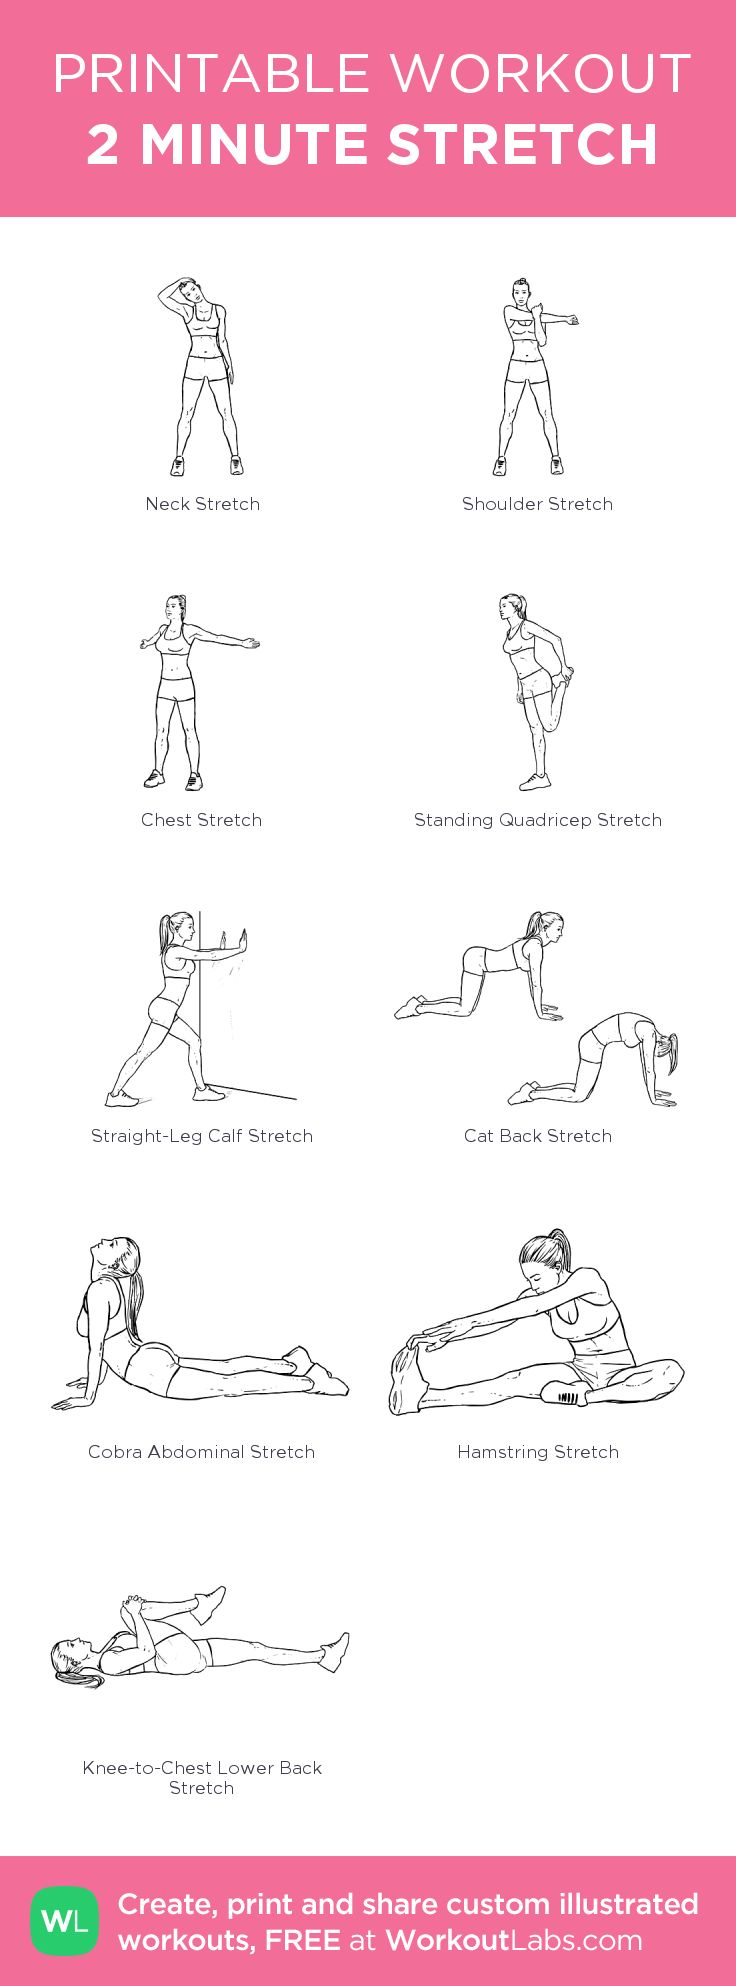 2 MINUTE STRETCH: my custom printable workout by @WorkoutLabs #workoutlabs #customworkout